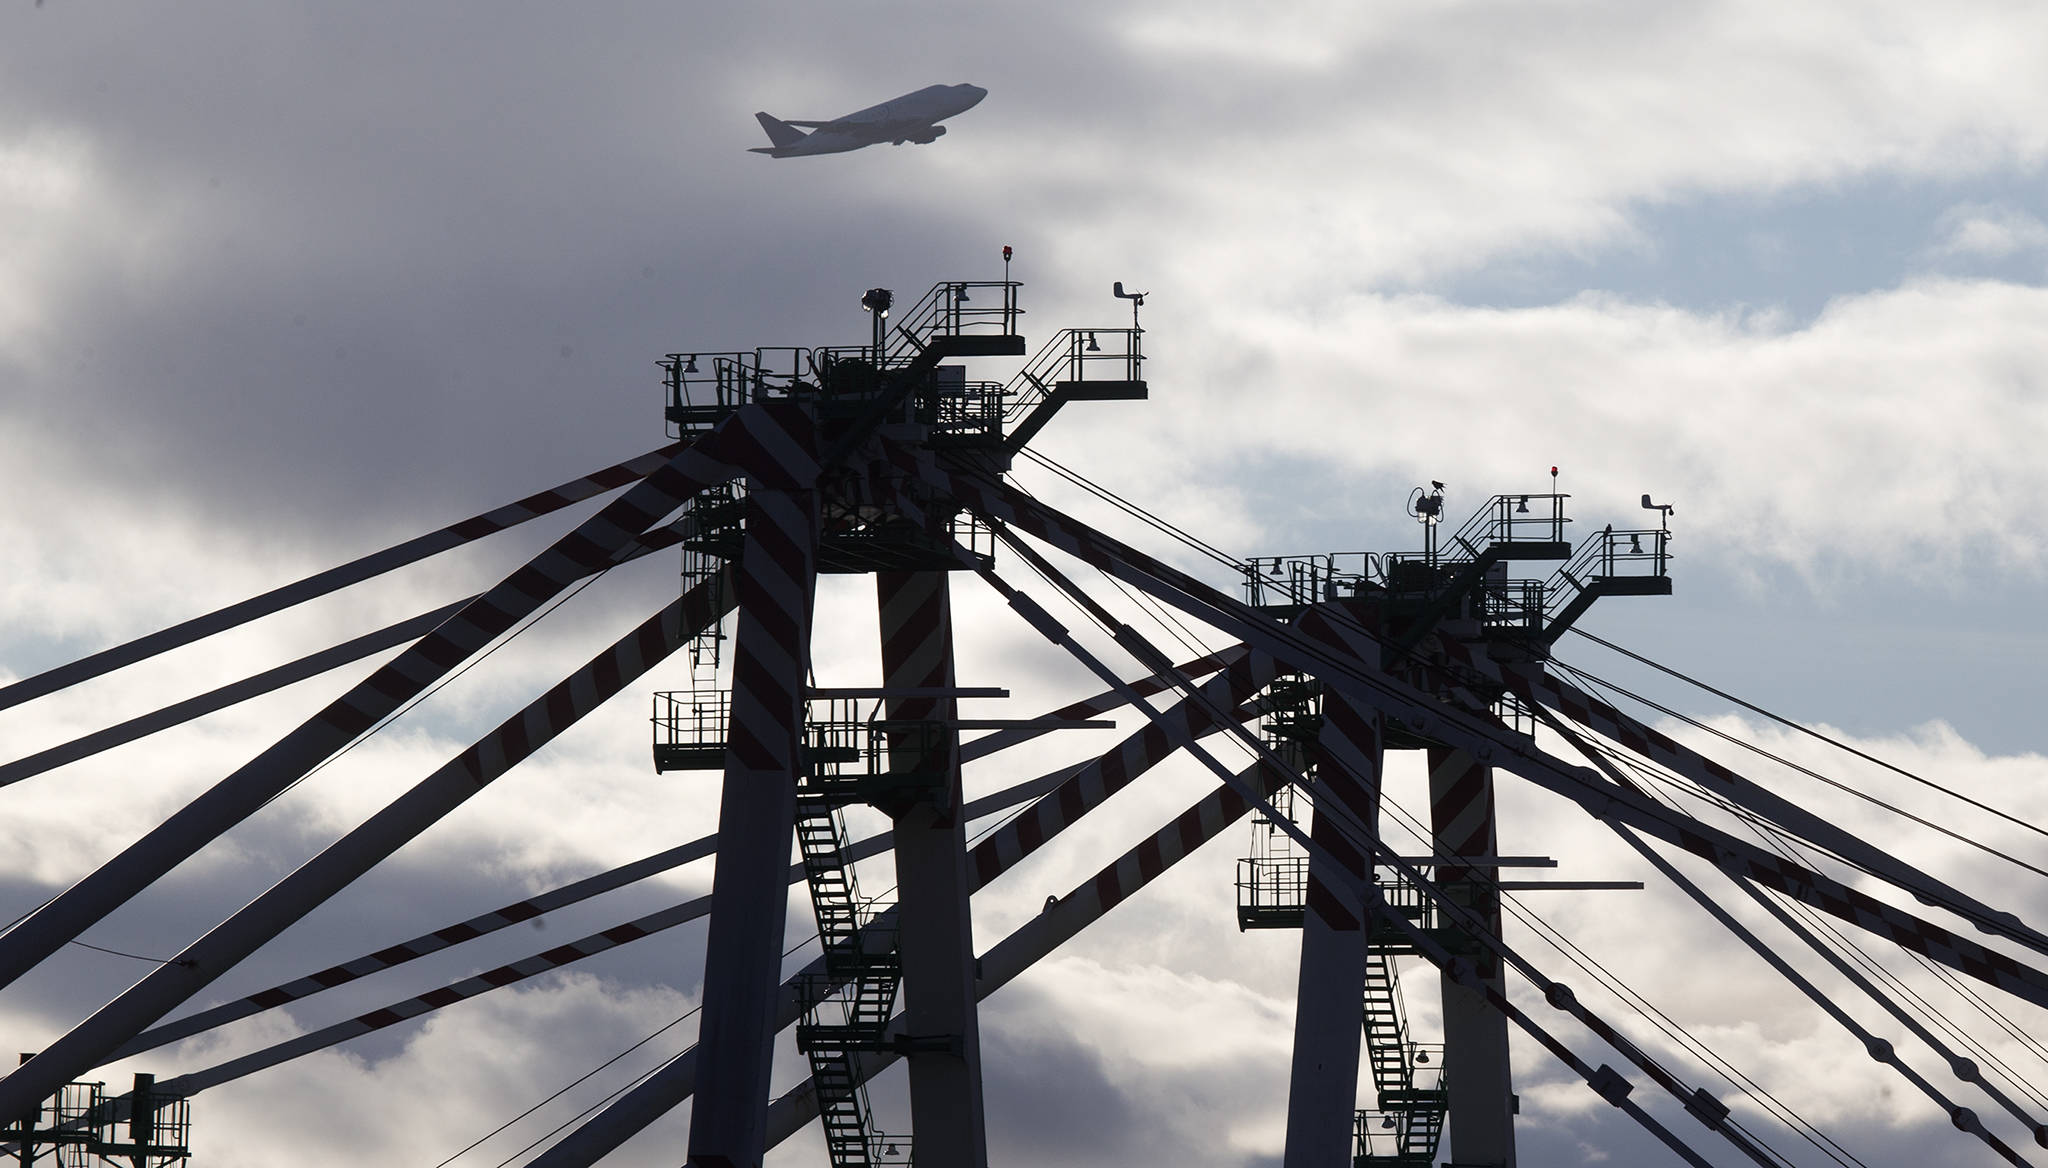 A Boeing Dreamlifter plane flies over the two new cranes Monday at the Port of Everett South Terminalin Everett. At 215-feet tall, the cranes are required to have FAA-approved markings or lighting. (Andy Bronson / The Herald)